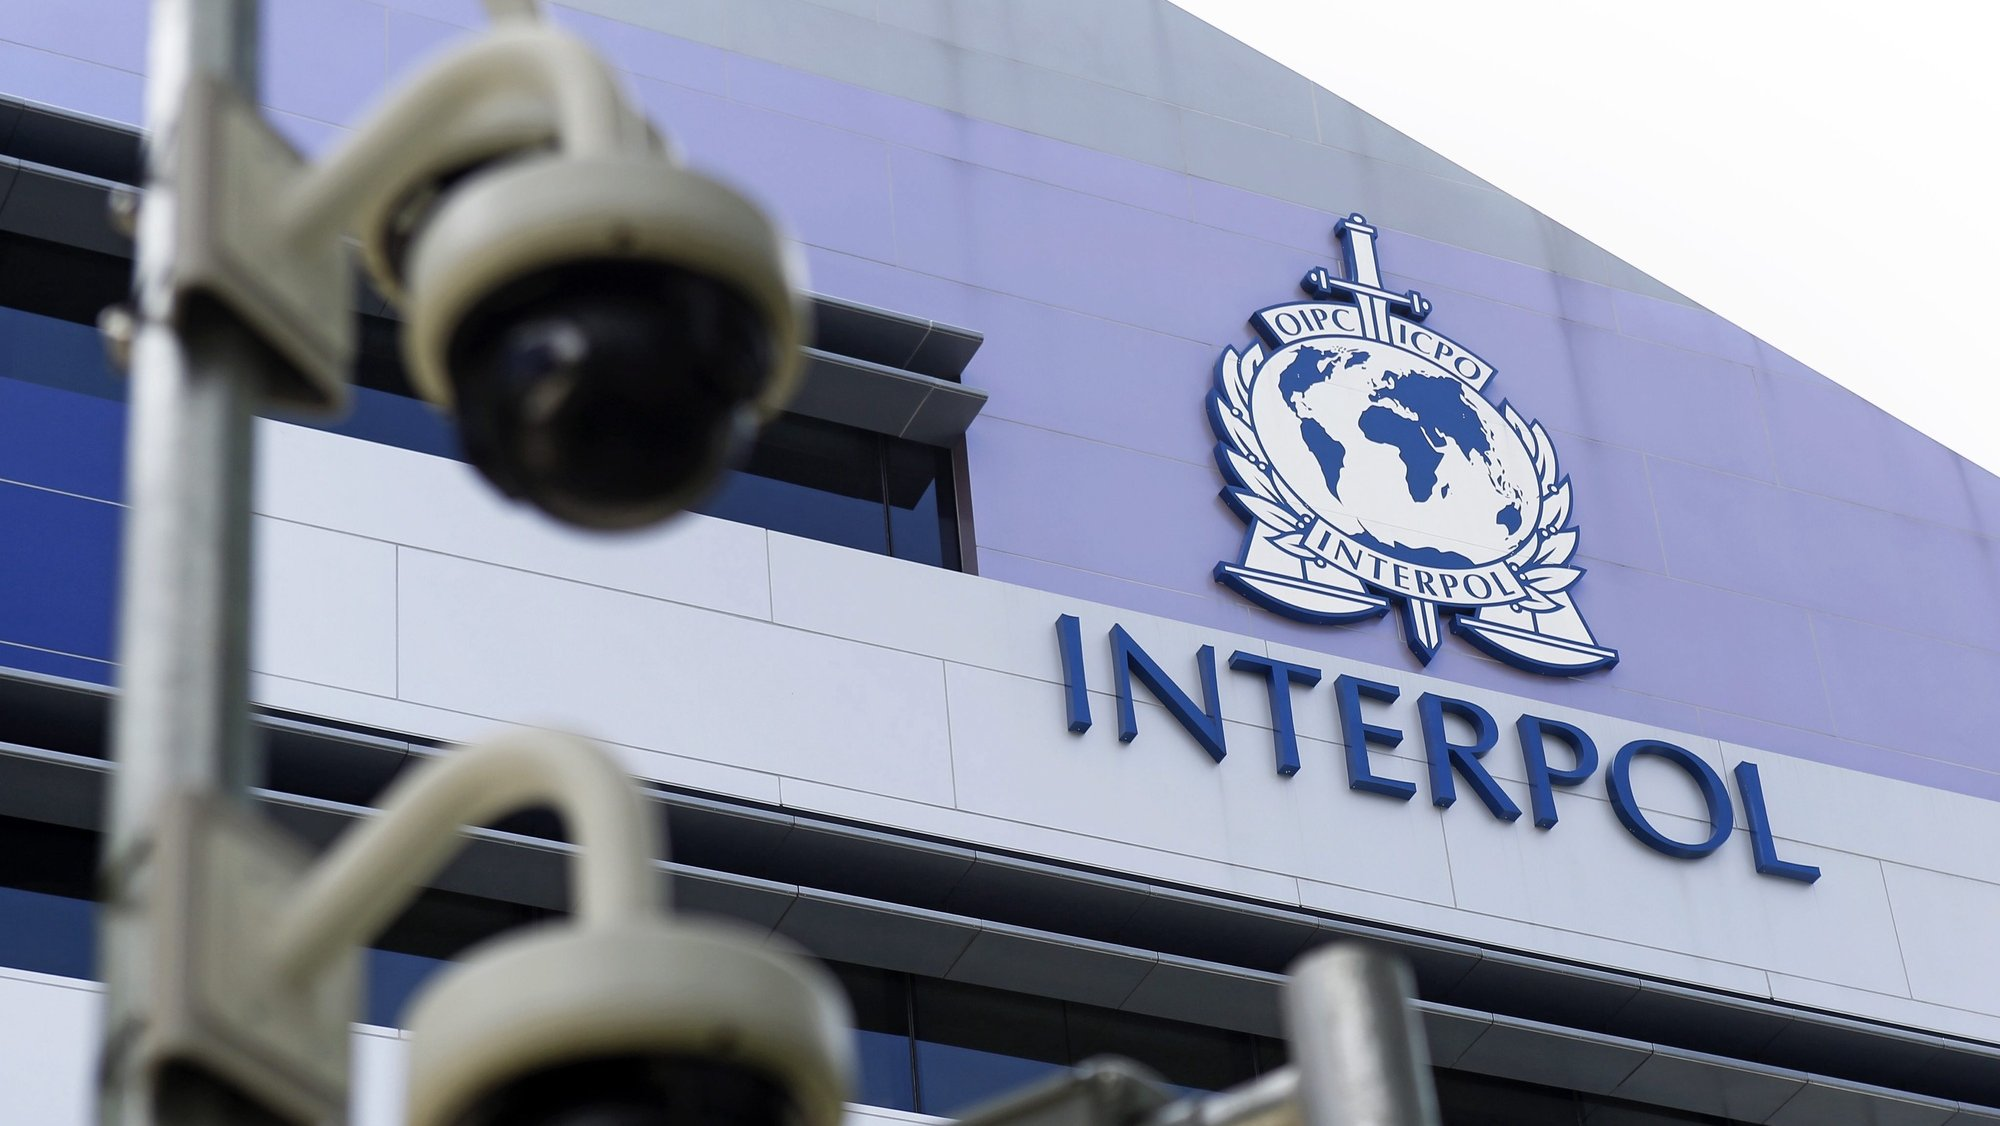 epa04703664 Security cameras pictured against the Interpol logo on the Interpol Global Complex for Innovation building (IGCI) in Singapore, 14 April 2015. Interpol's first digital crime centre was officially opened in Singapore on 13 April 2015. Complementing its headquarters in Lyon, the Interpol Global Complex for Innovation (ICGI) will support international policing efforts against cybercrime, as well as research and capacity building in online security.  EPA/WALLACE WOON